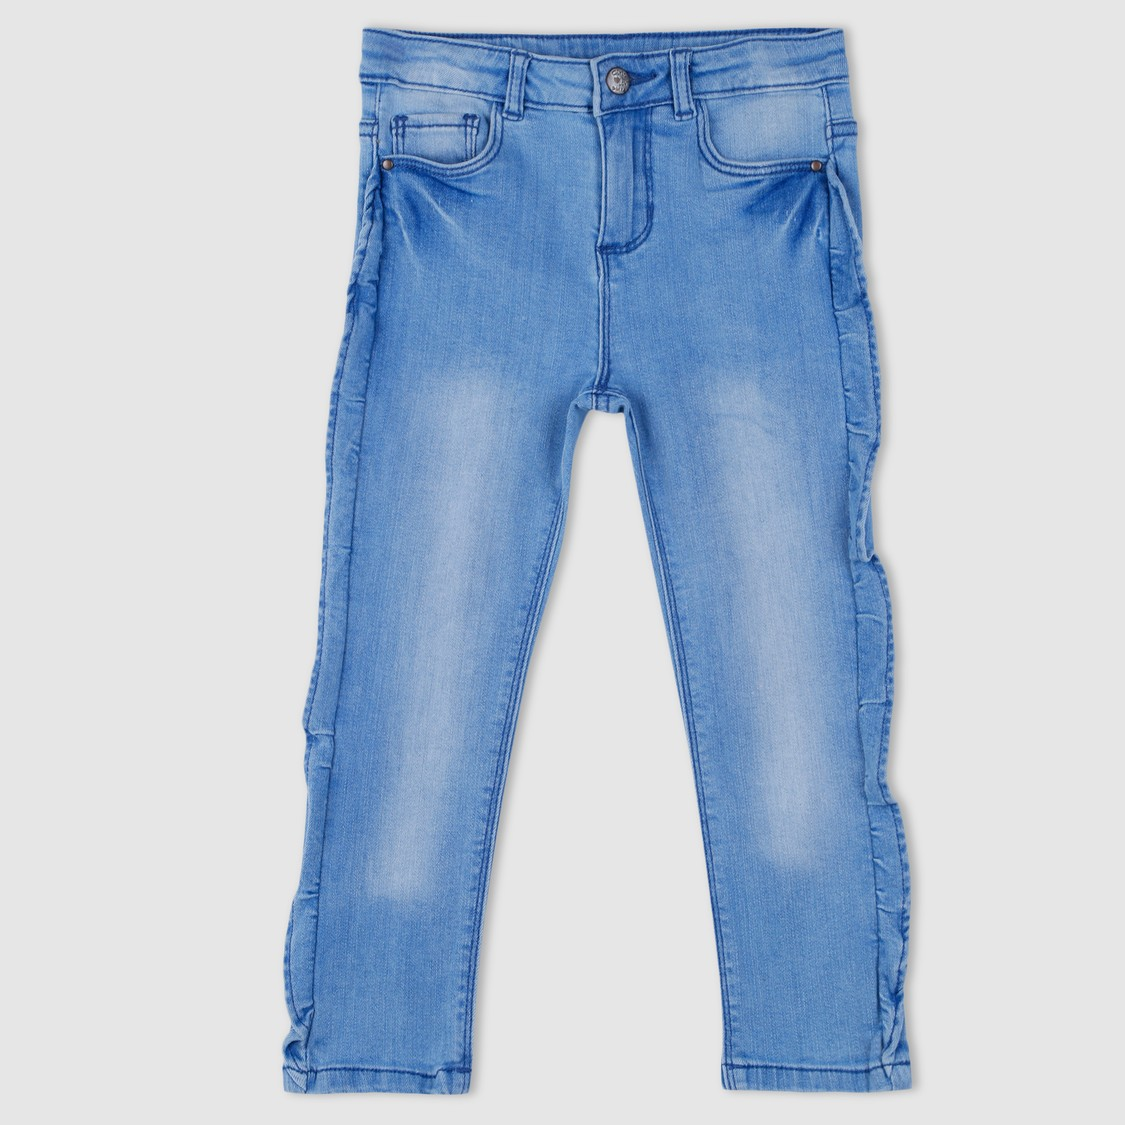 Full Length Jeans with Frill Detailing